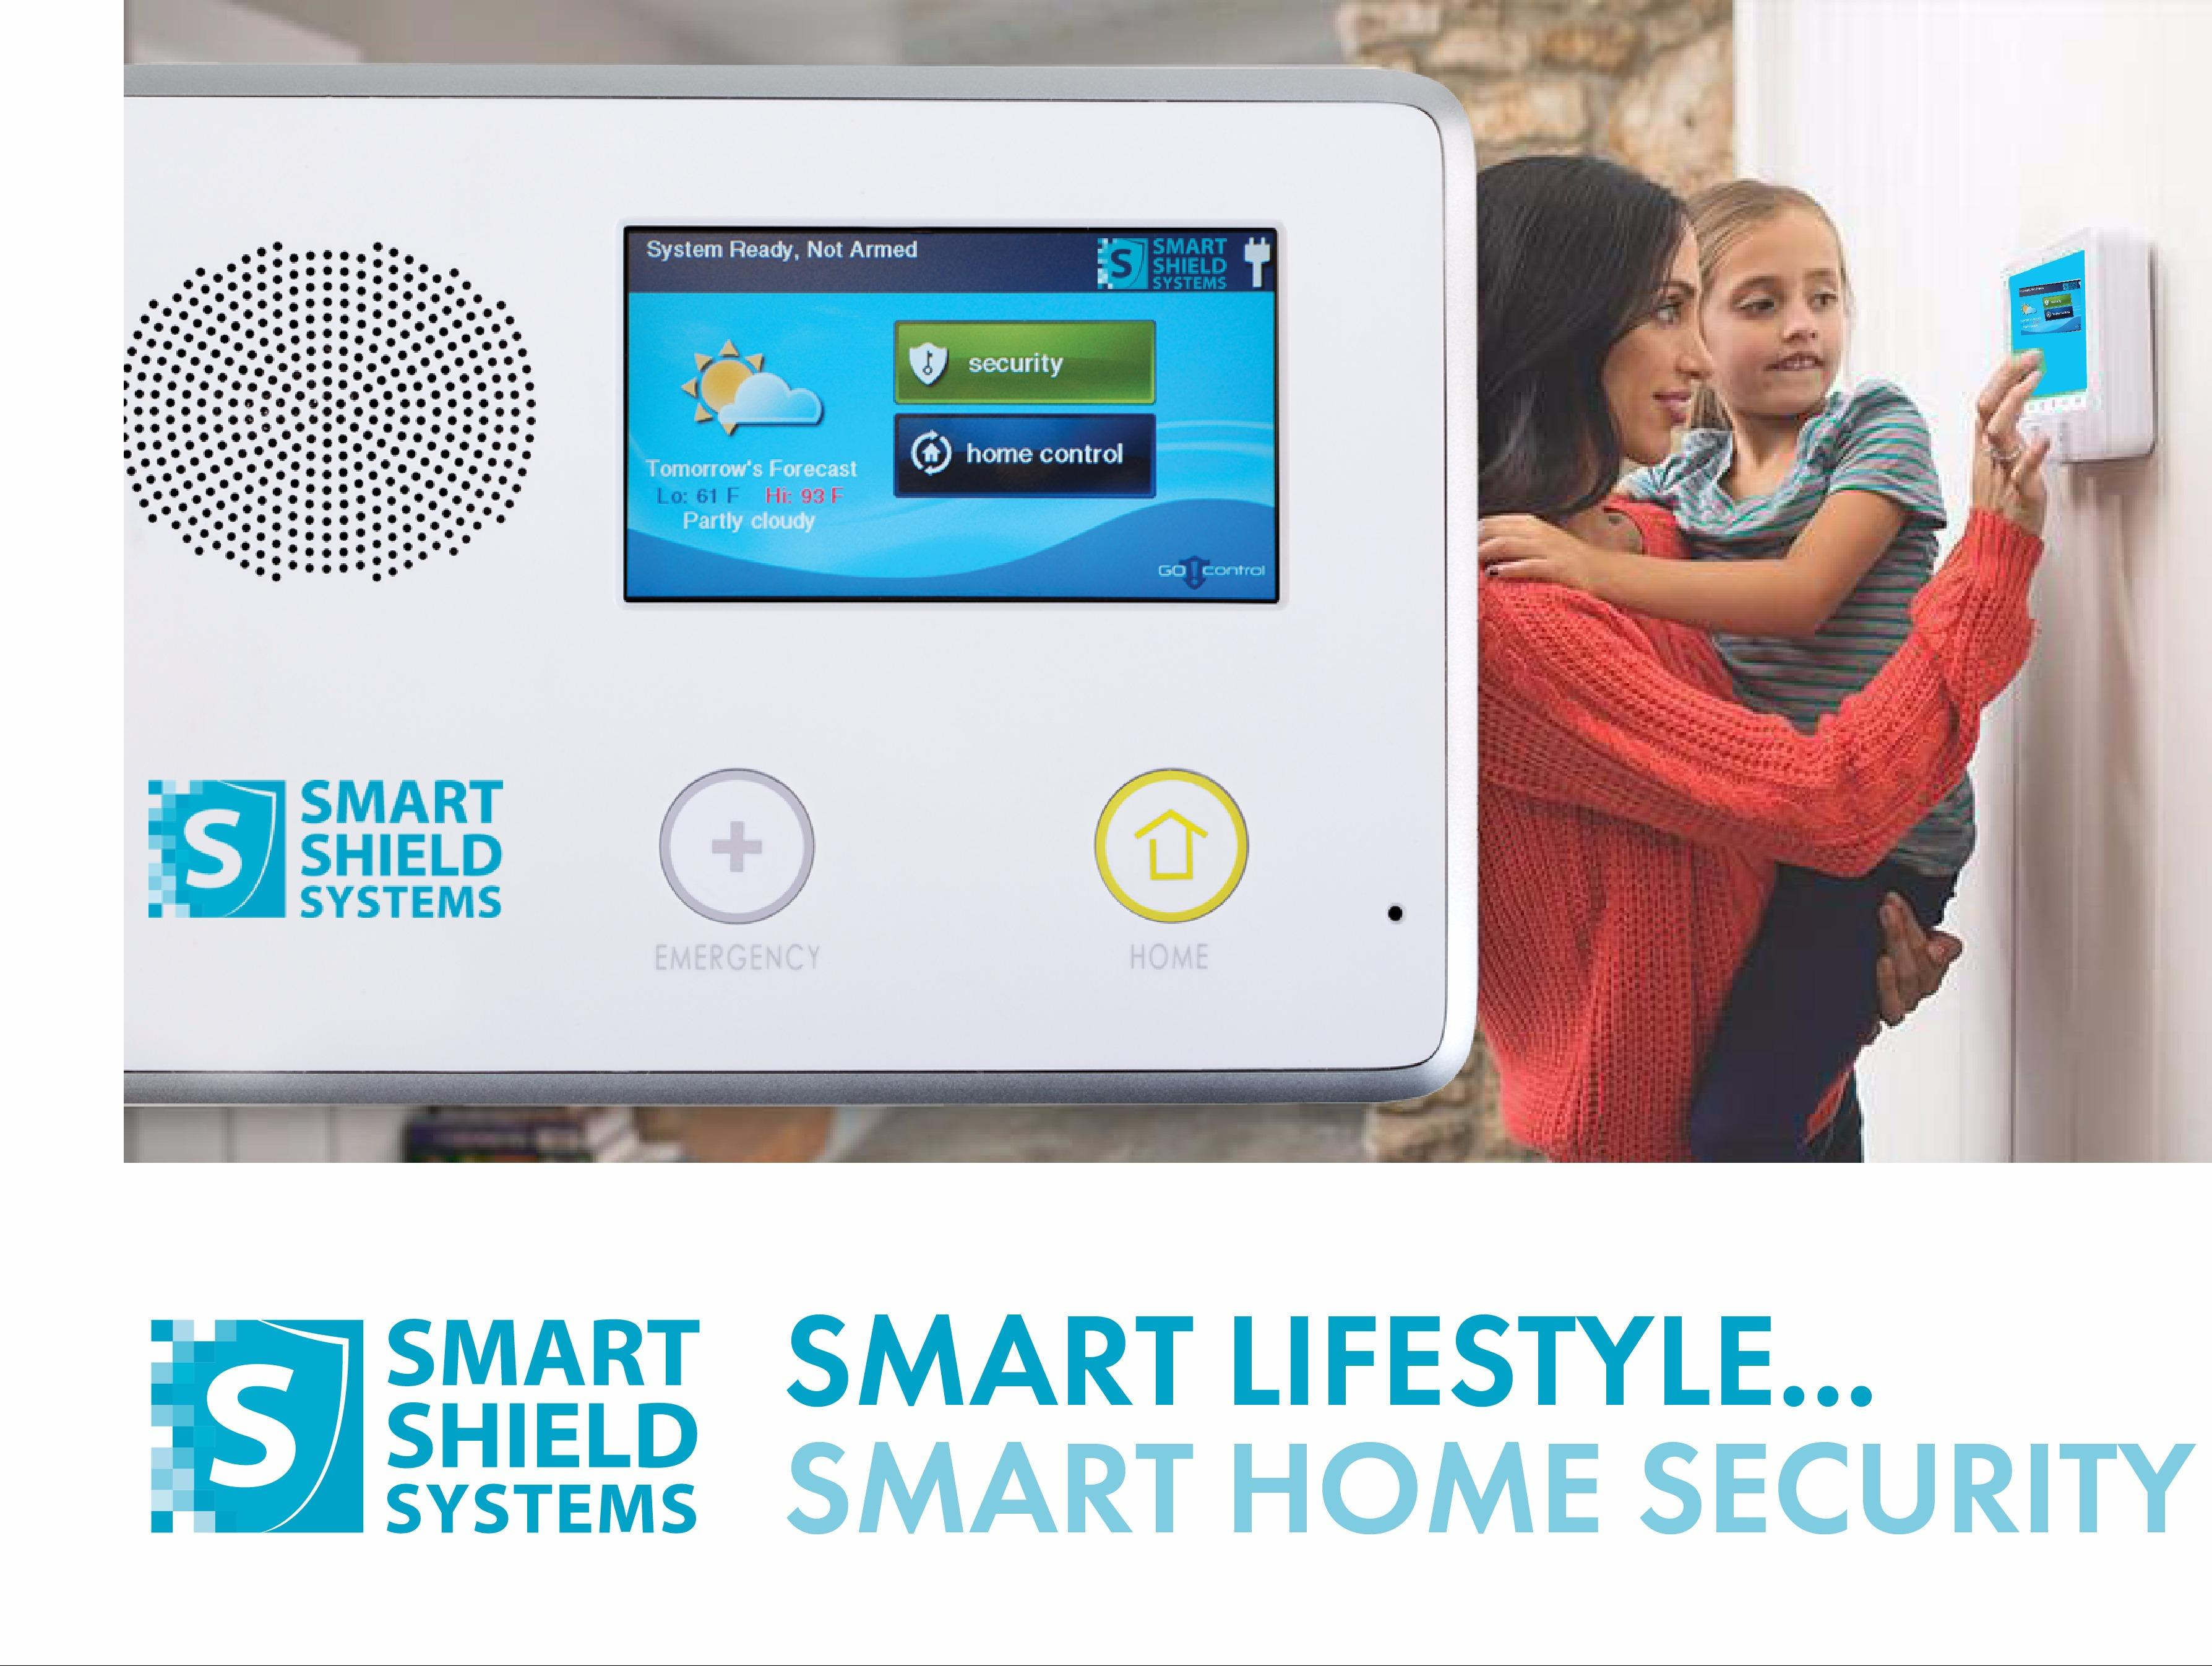 Smart Shield Systems image 15